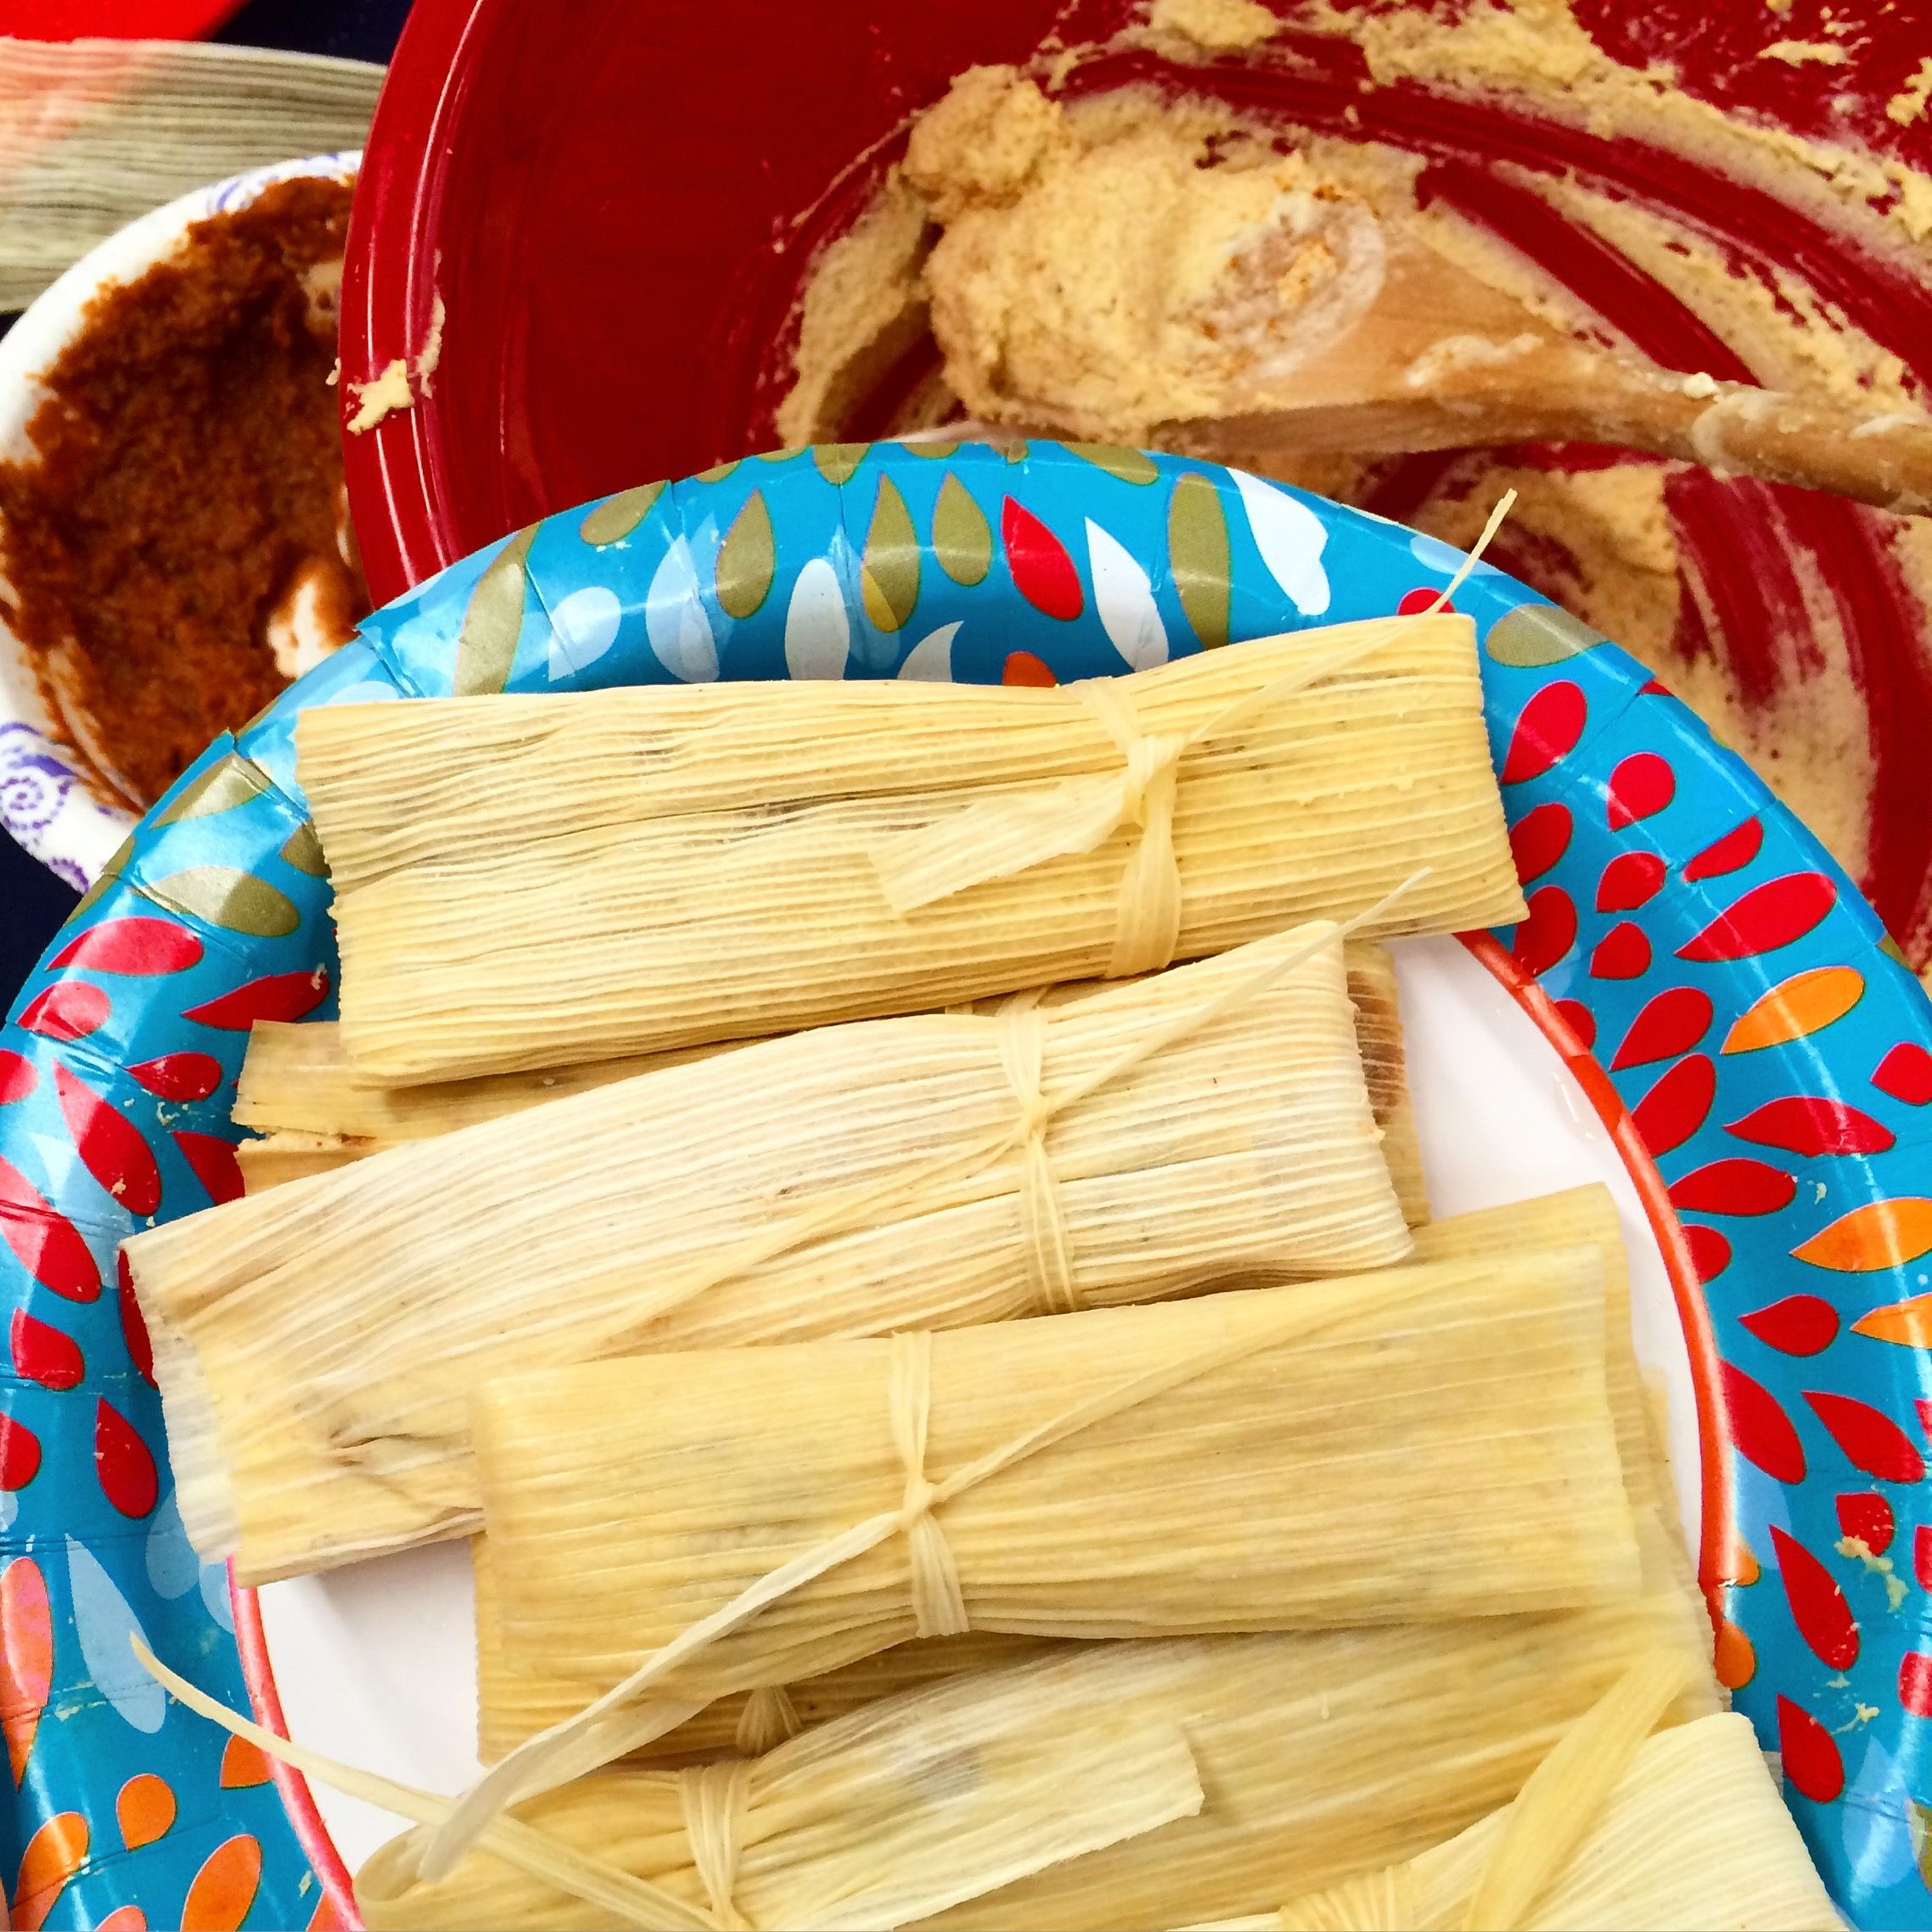 Tamales are a Christmastime tradition, with recipes passed down through generations. Read about them as a symbol of cultural unity.